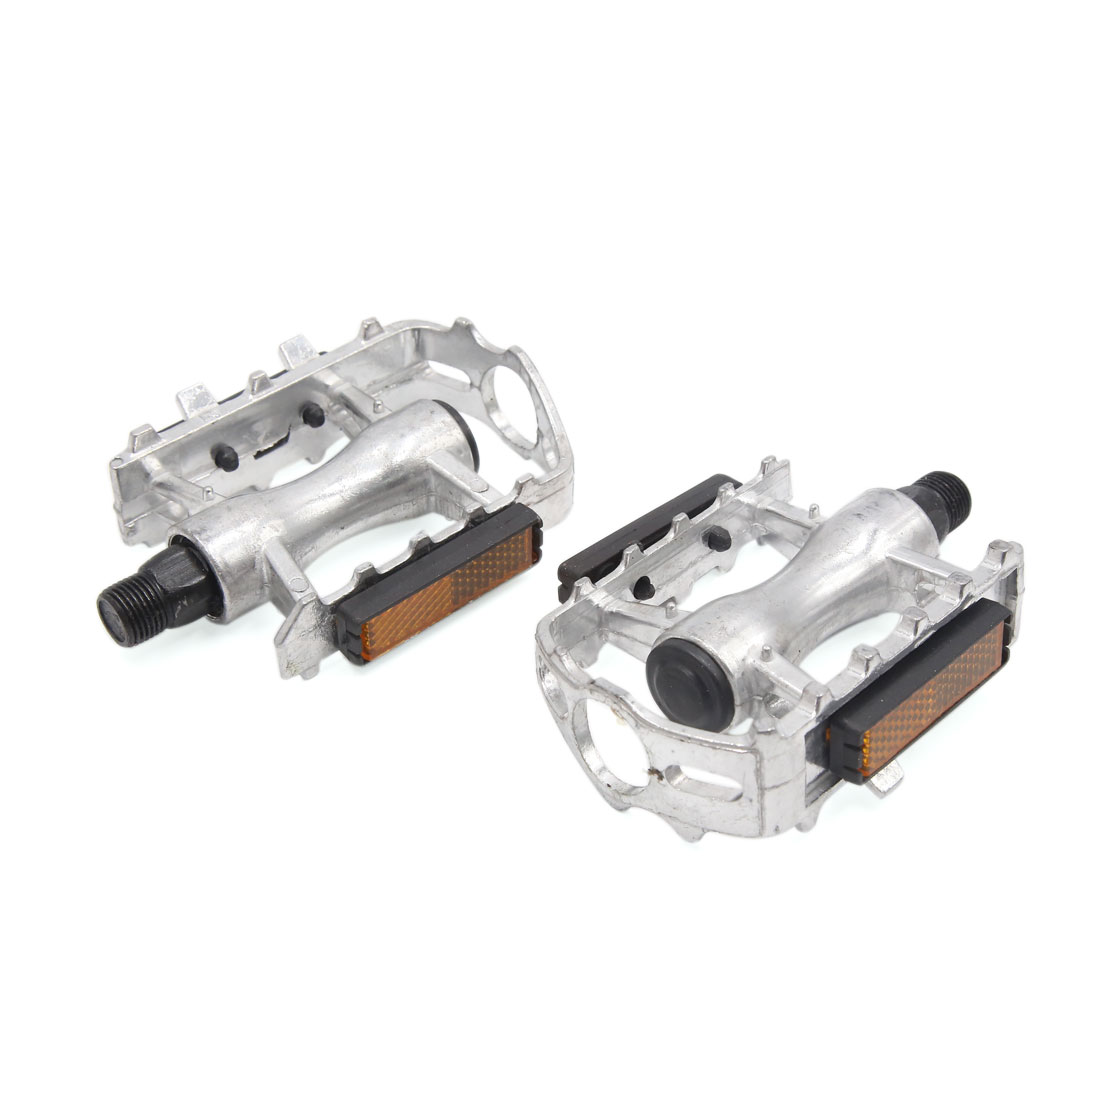 2 Pcs Silver Tone Aluminum Alloy Anti Slip Axle Platform Pedals for Bike Bicycle Cycling